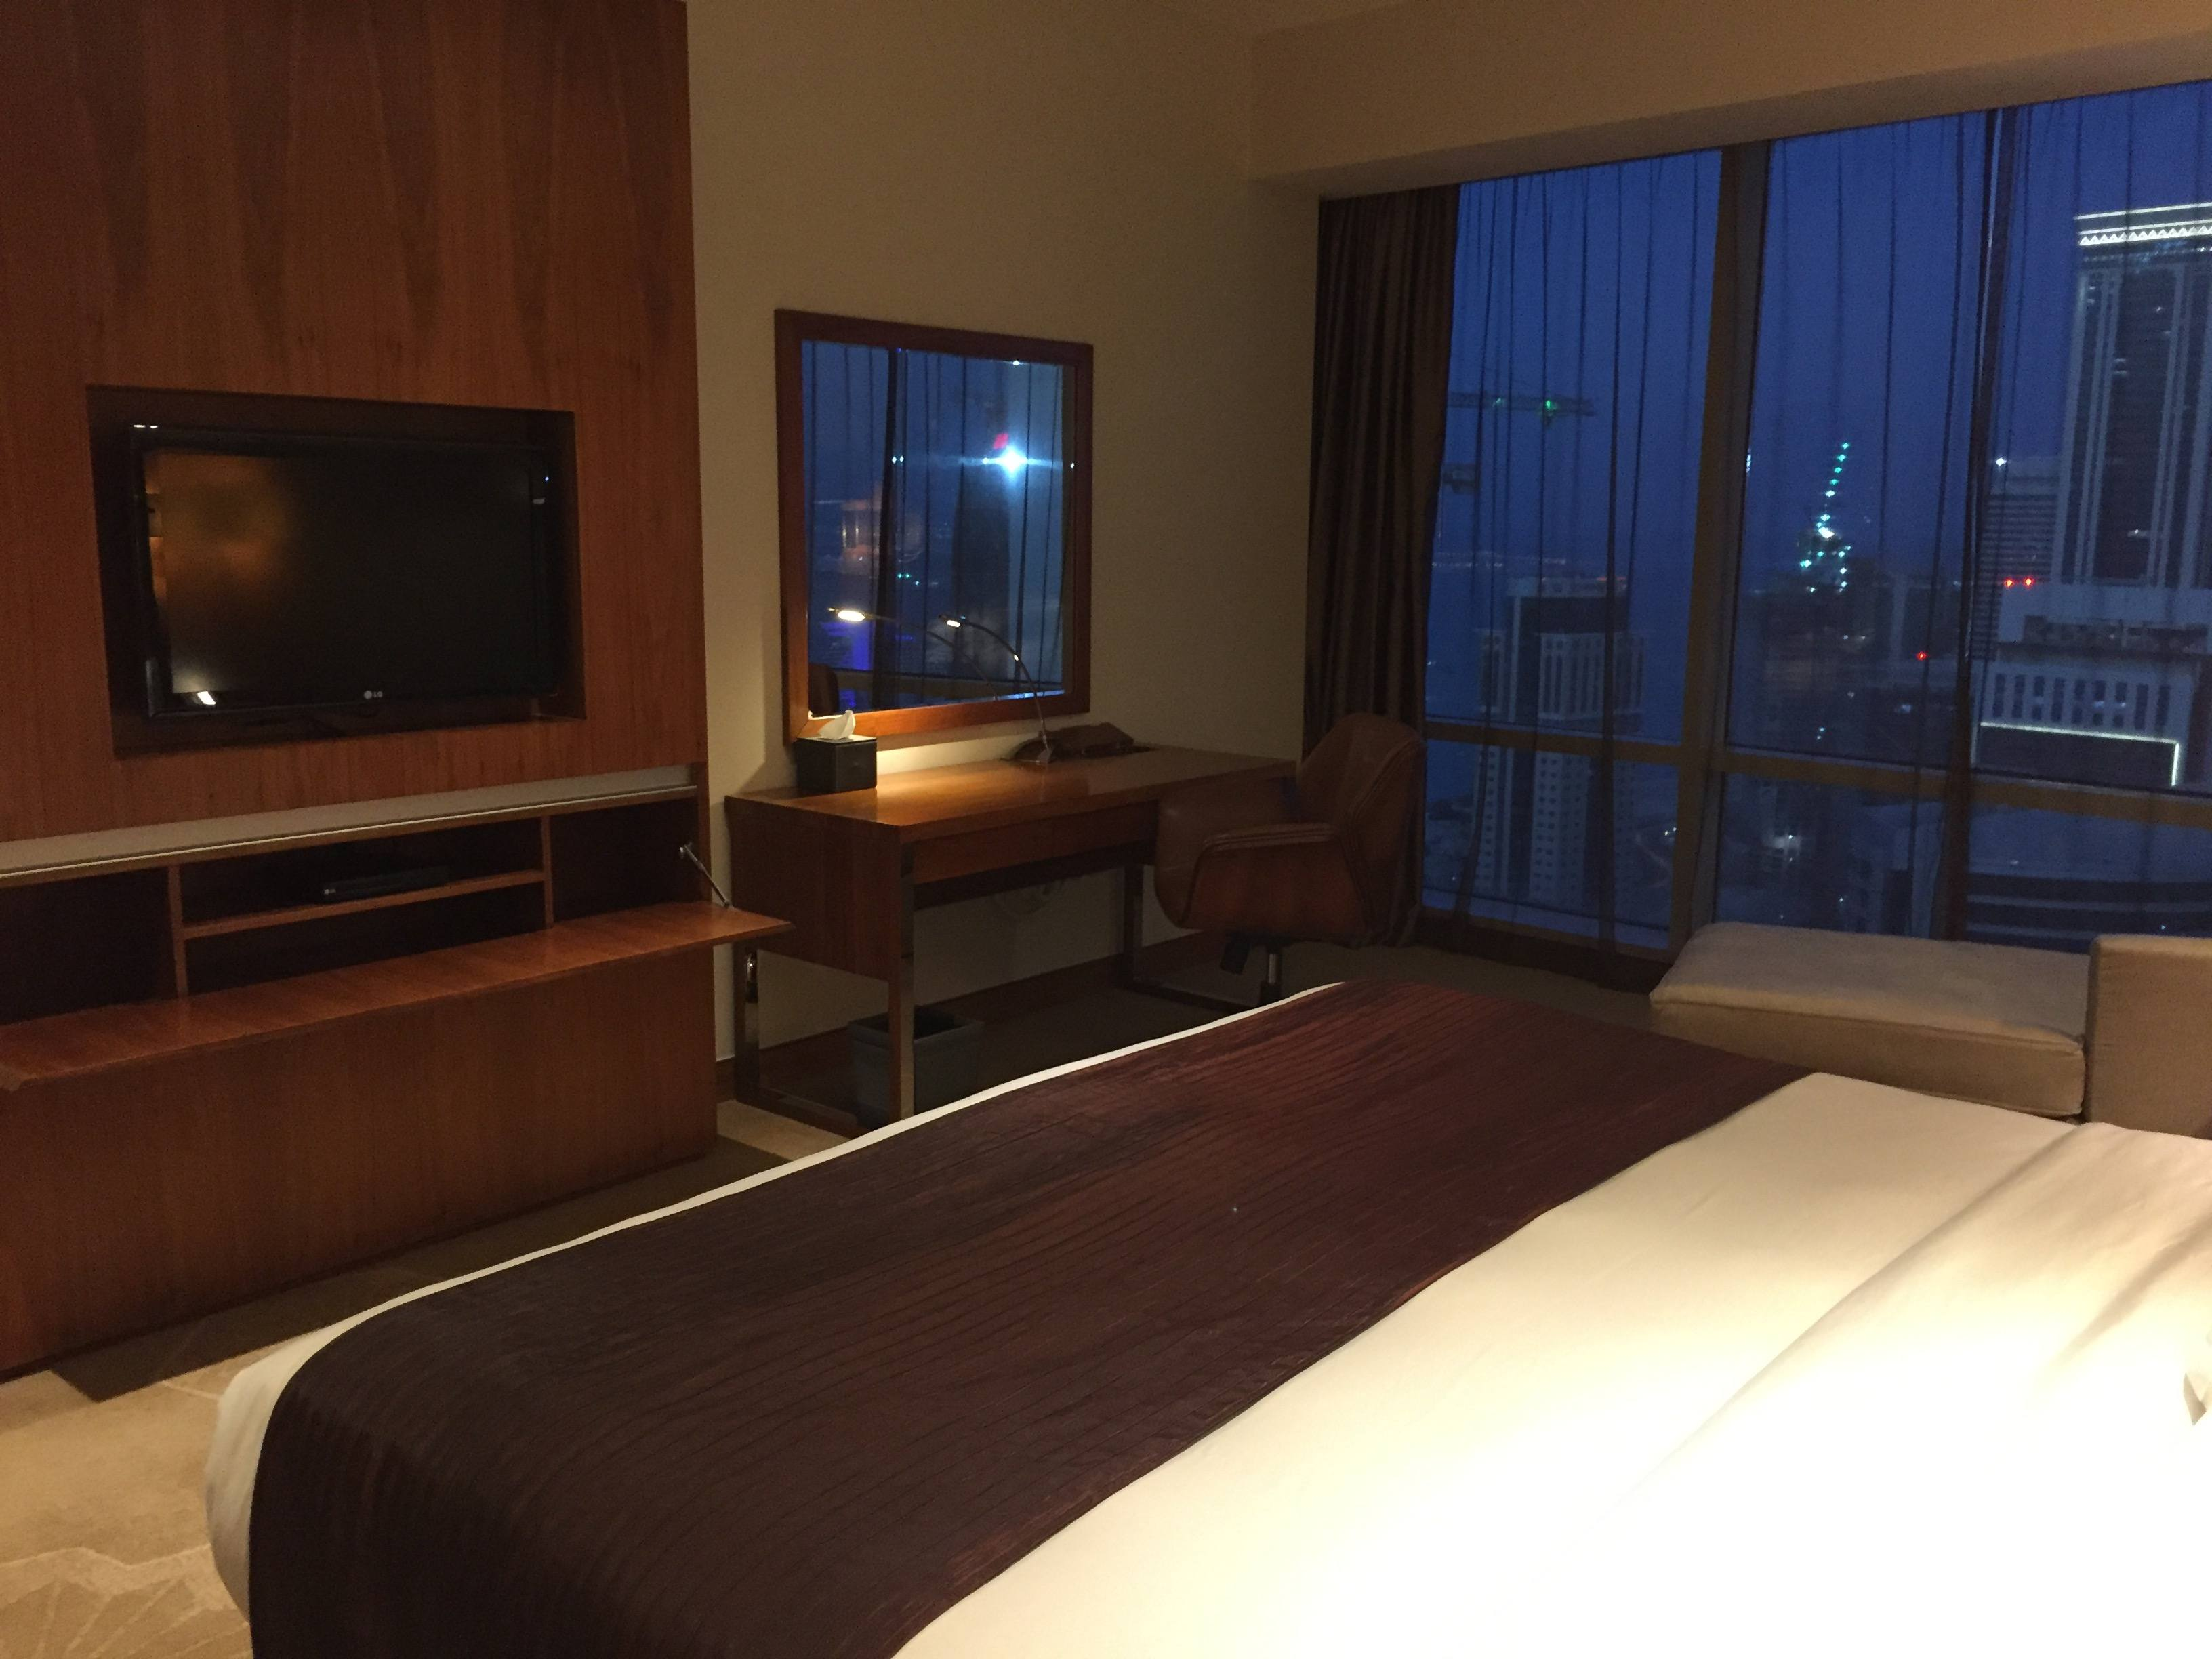 Bedroom view of the second desk and TV - InterContinental Doha The City